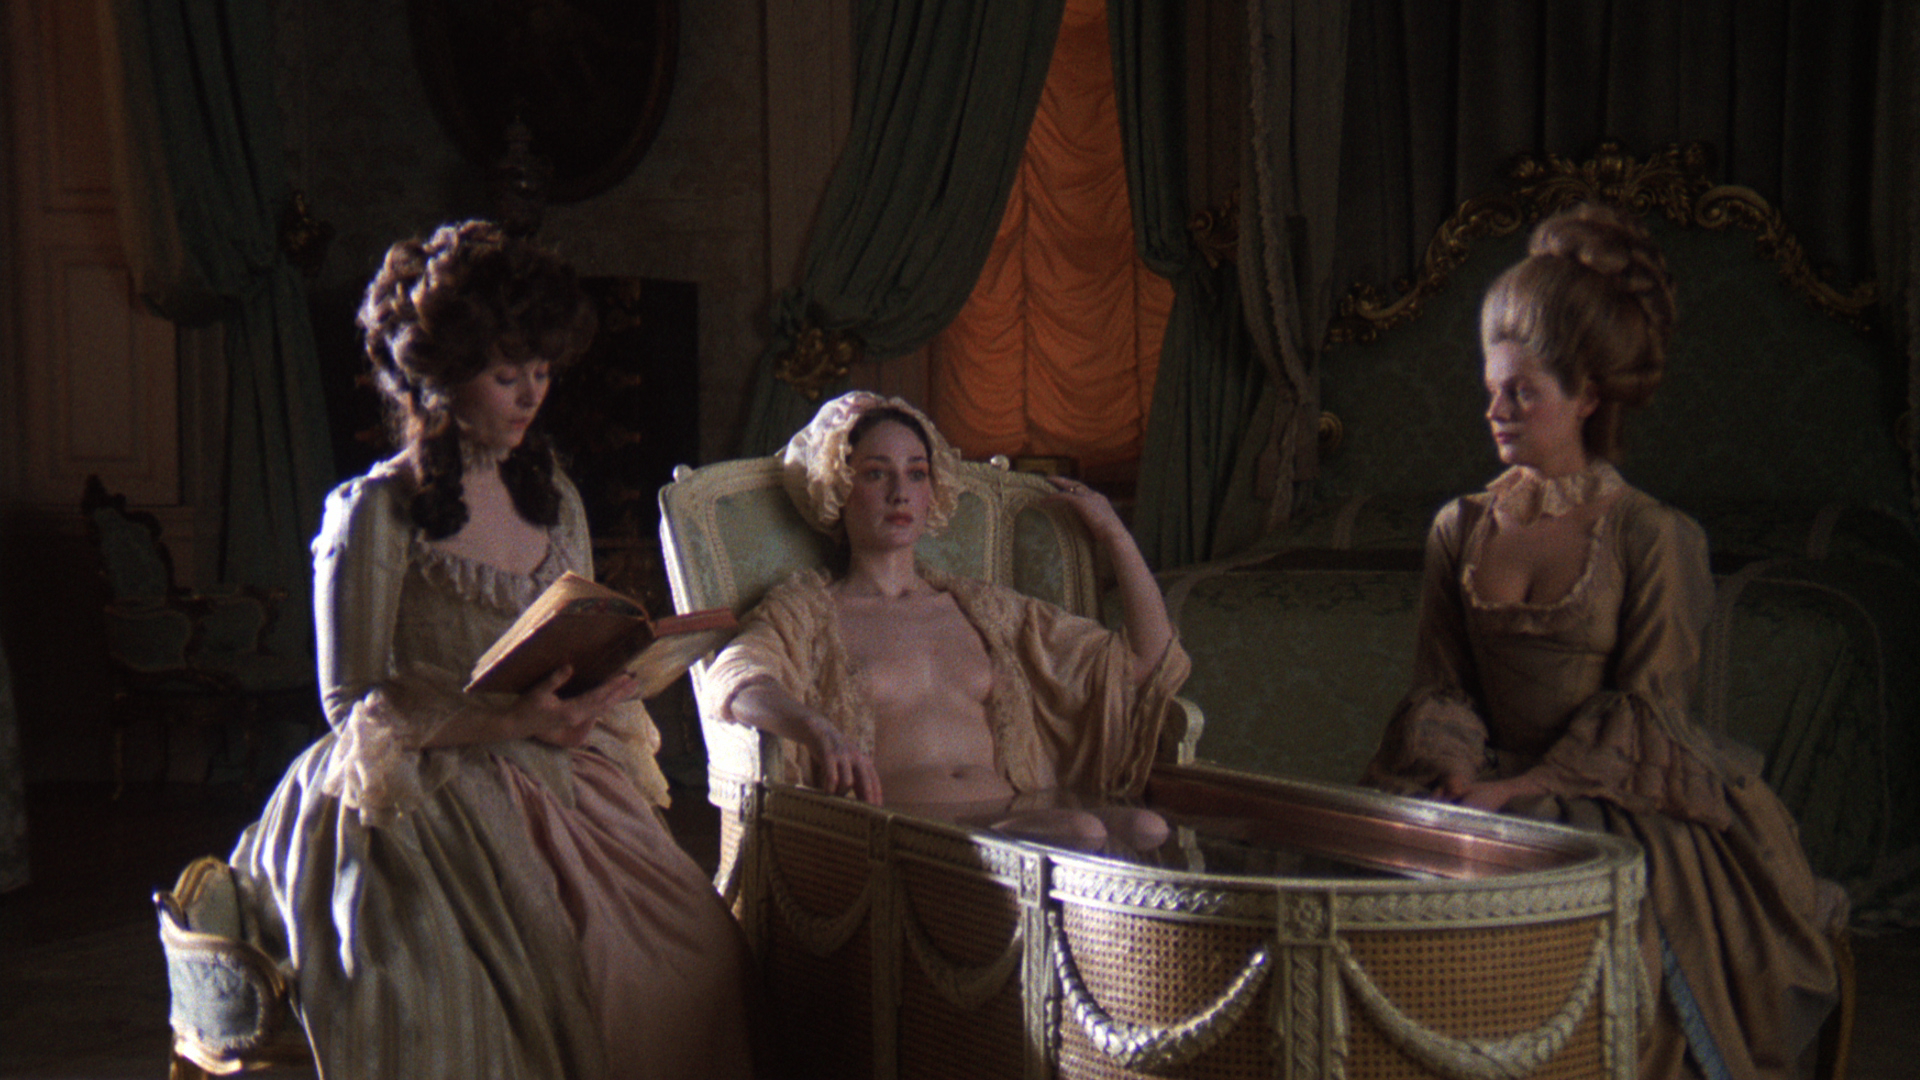 BARRY LYNDON PIC 9 -® 1975 Warner Bros. All Rights Reserved